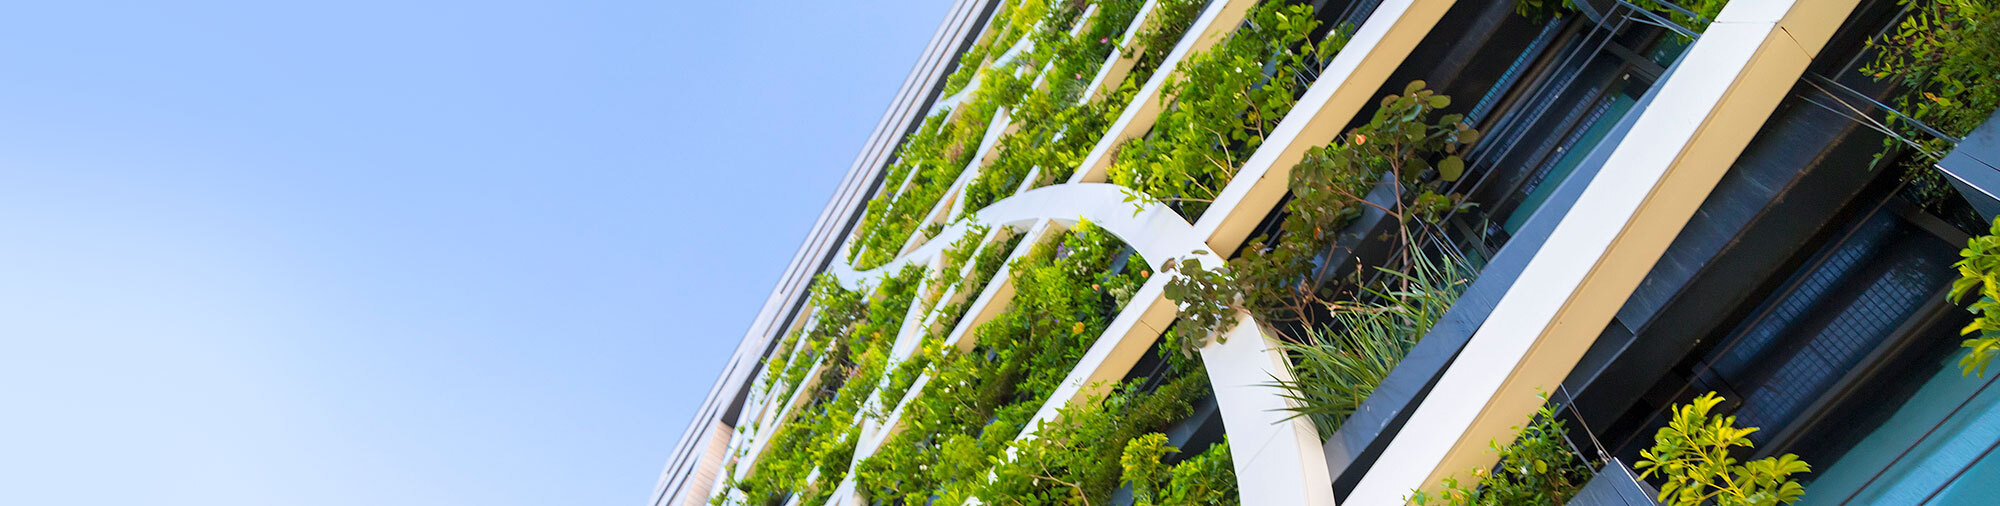 Clean city type building with vertical gardens up the sides of the structure